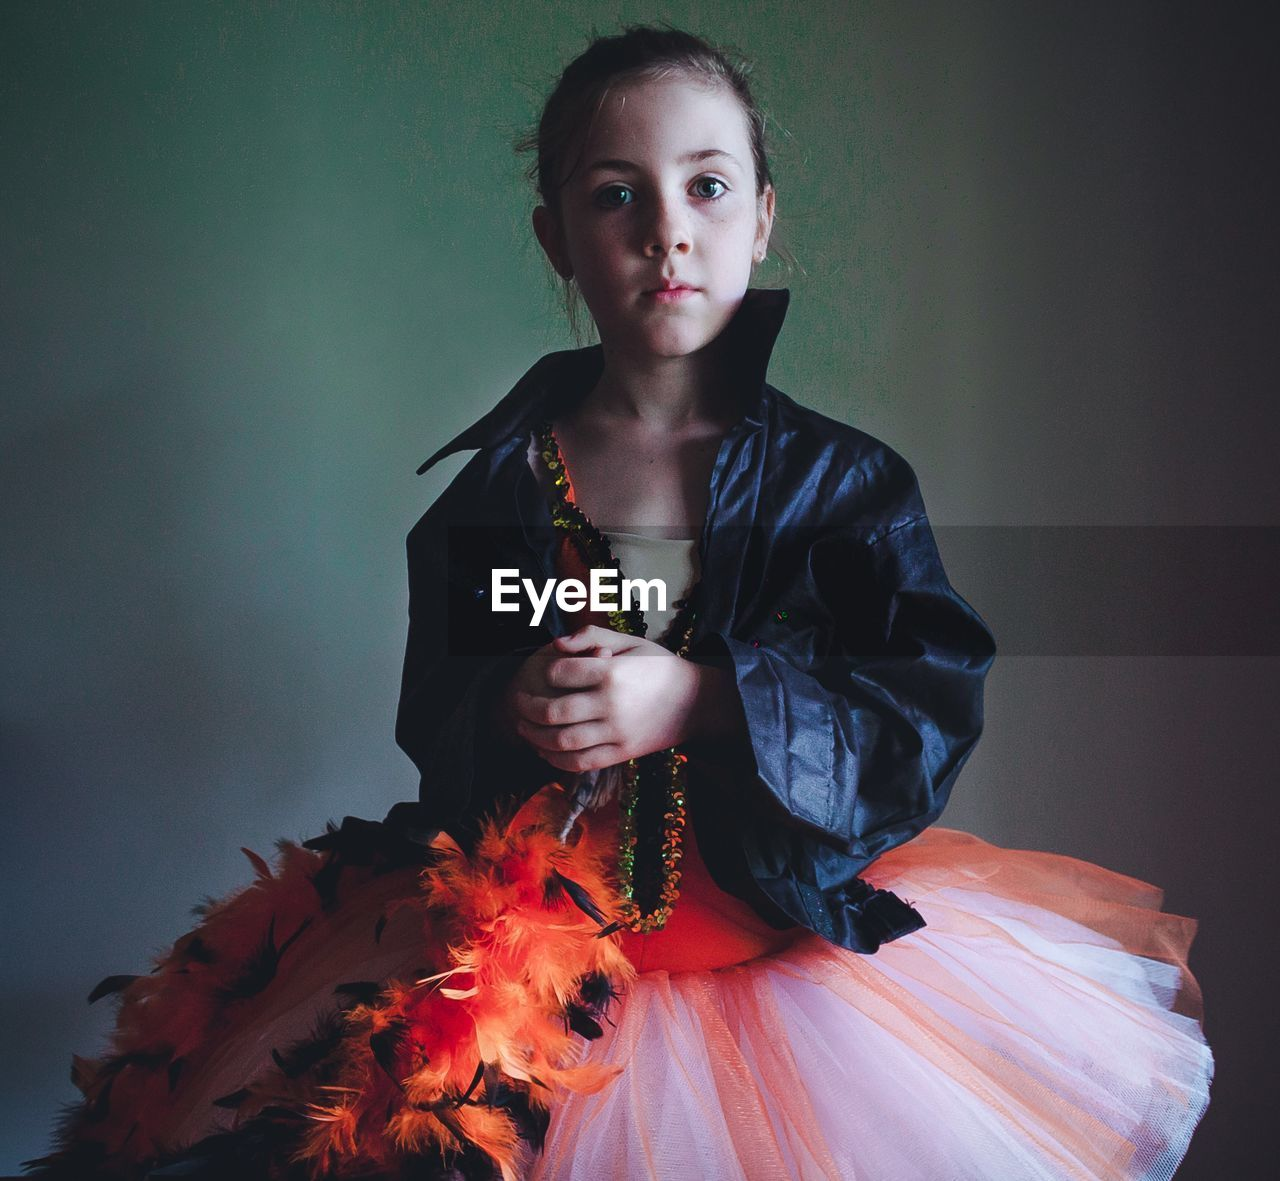 Portrait Of Confident Girl Wearing Tutu And Jacket Against Wall